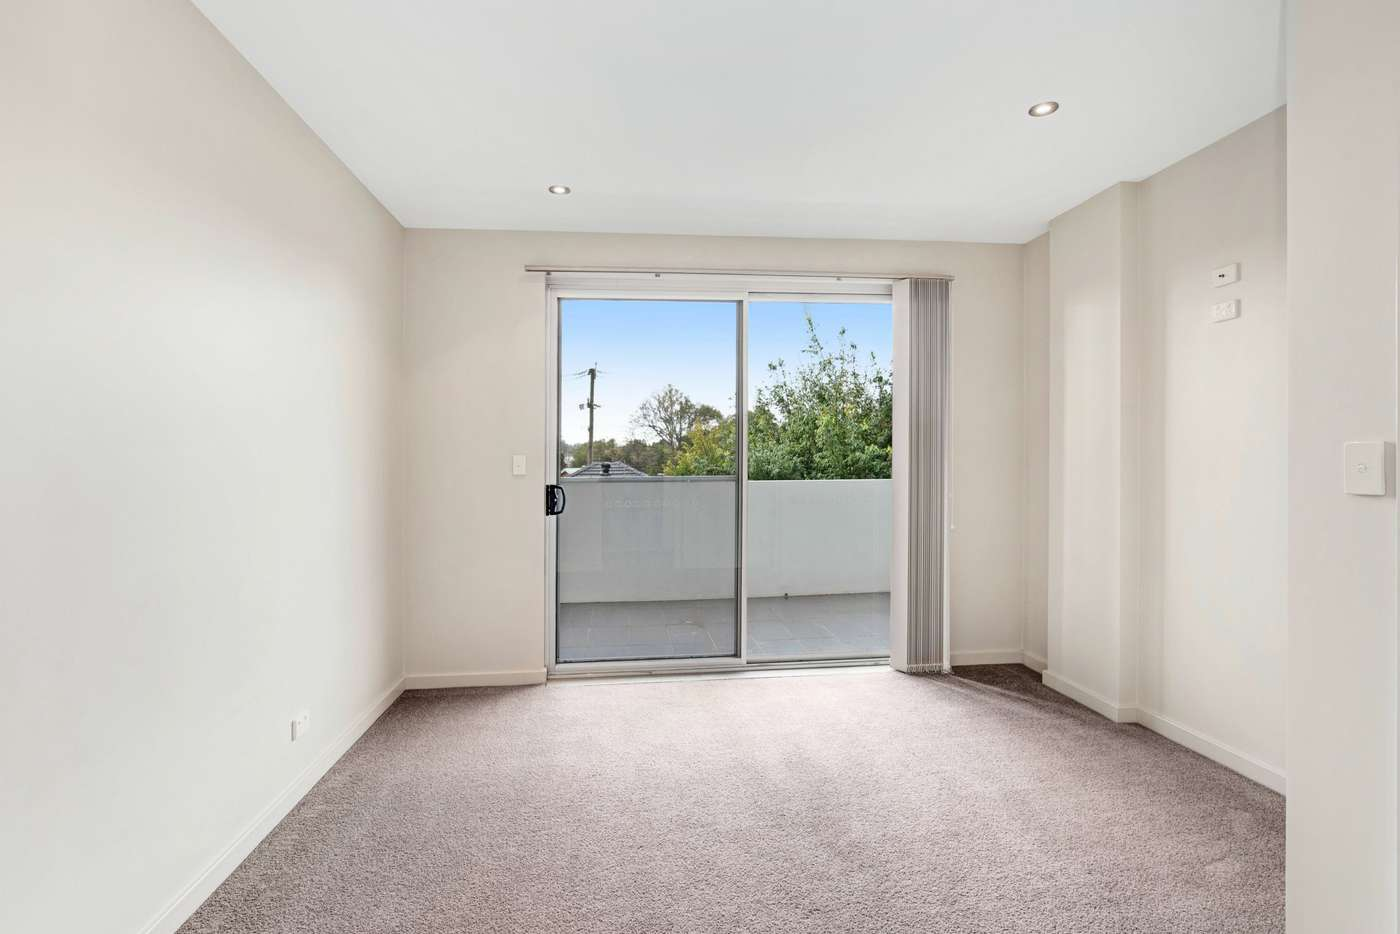 Fifth view of Homely apartment listing, 4/24 Brooks Parade, Belmont NSW 2280